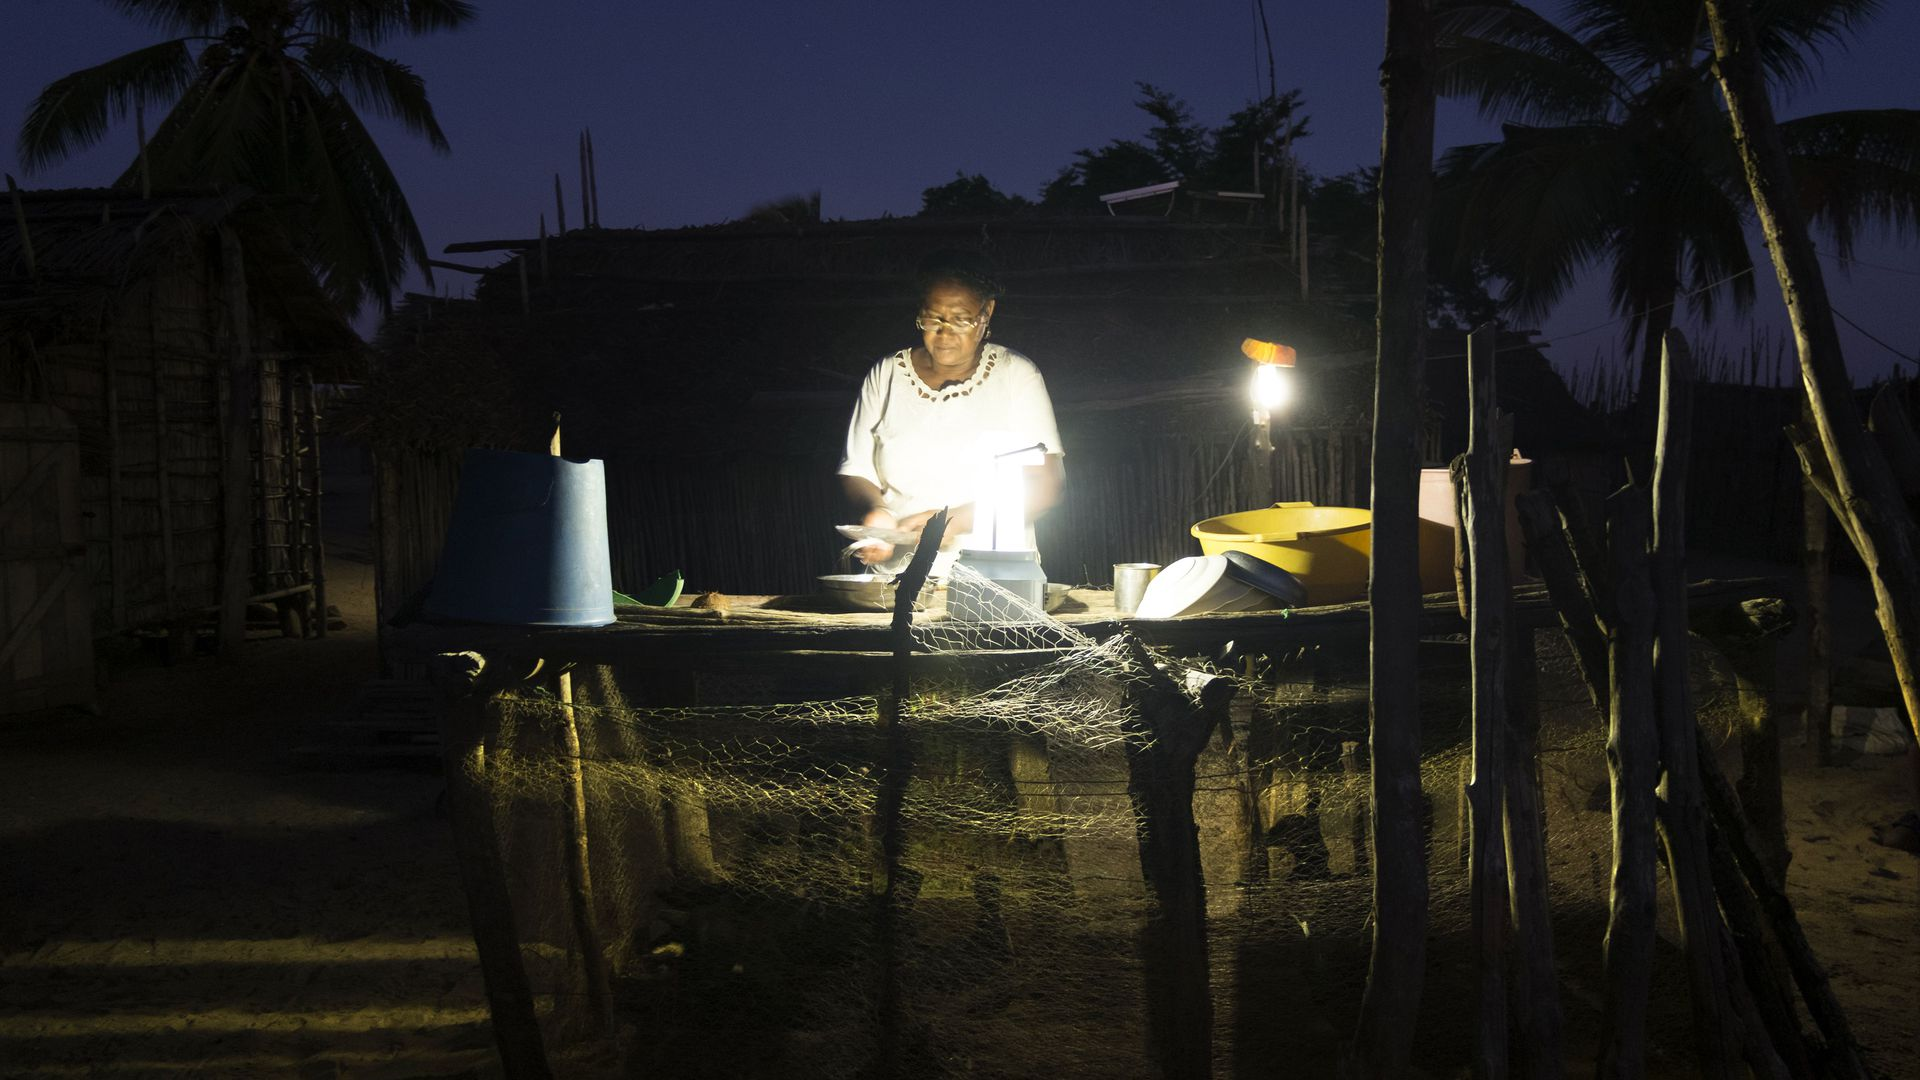 A woman in Madagascar working outside at night in lamplight